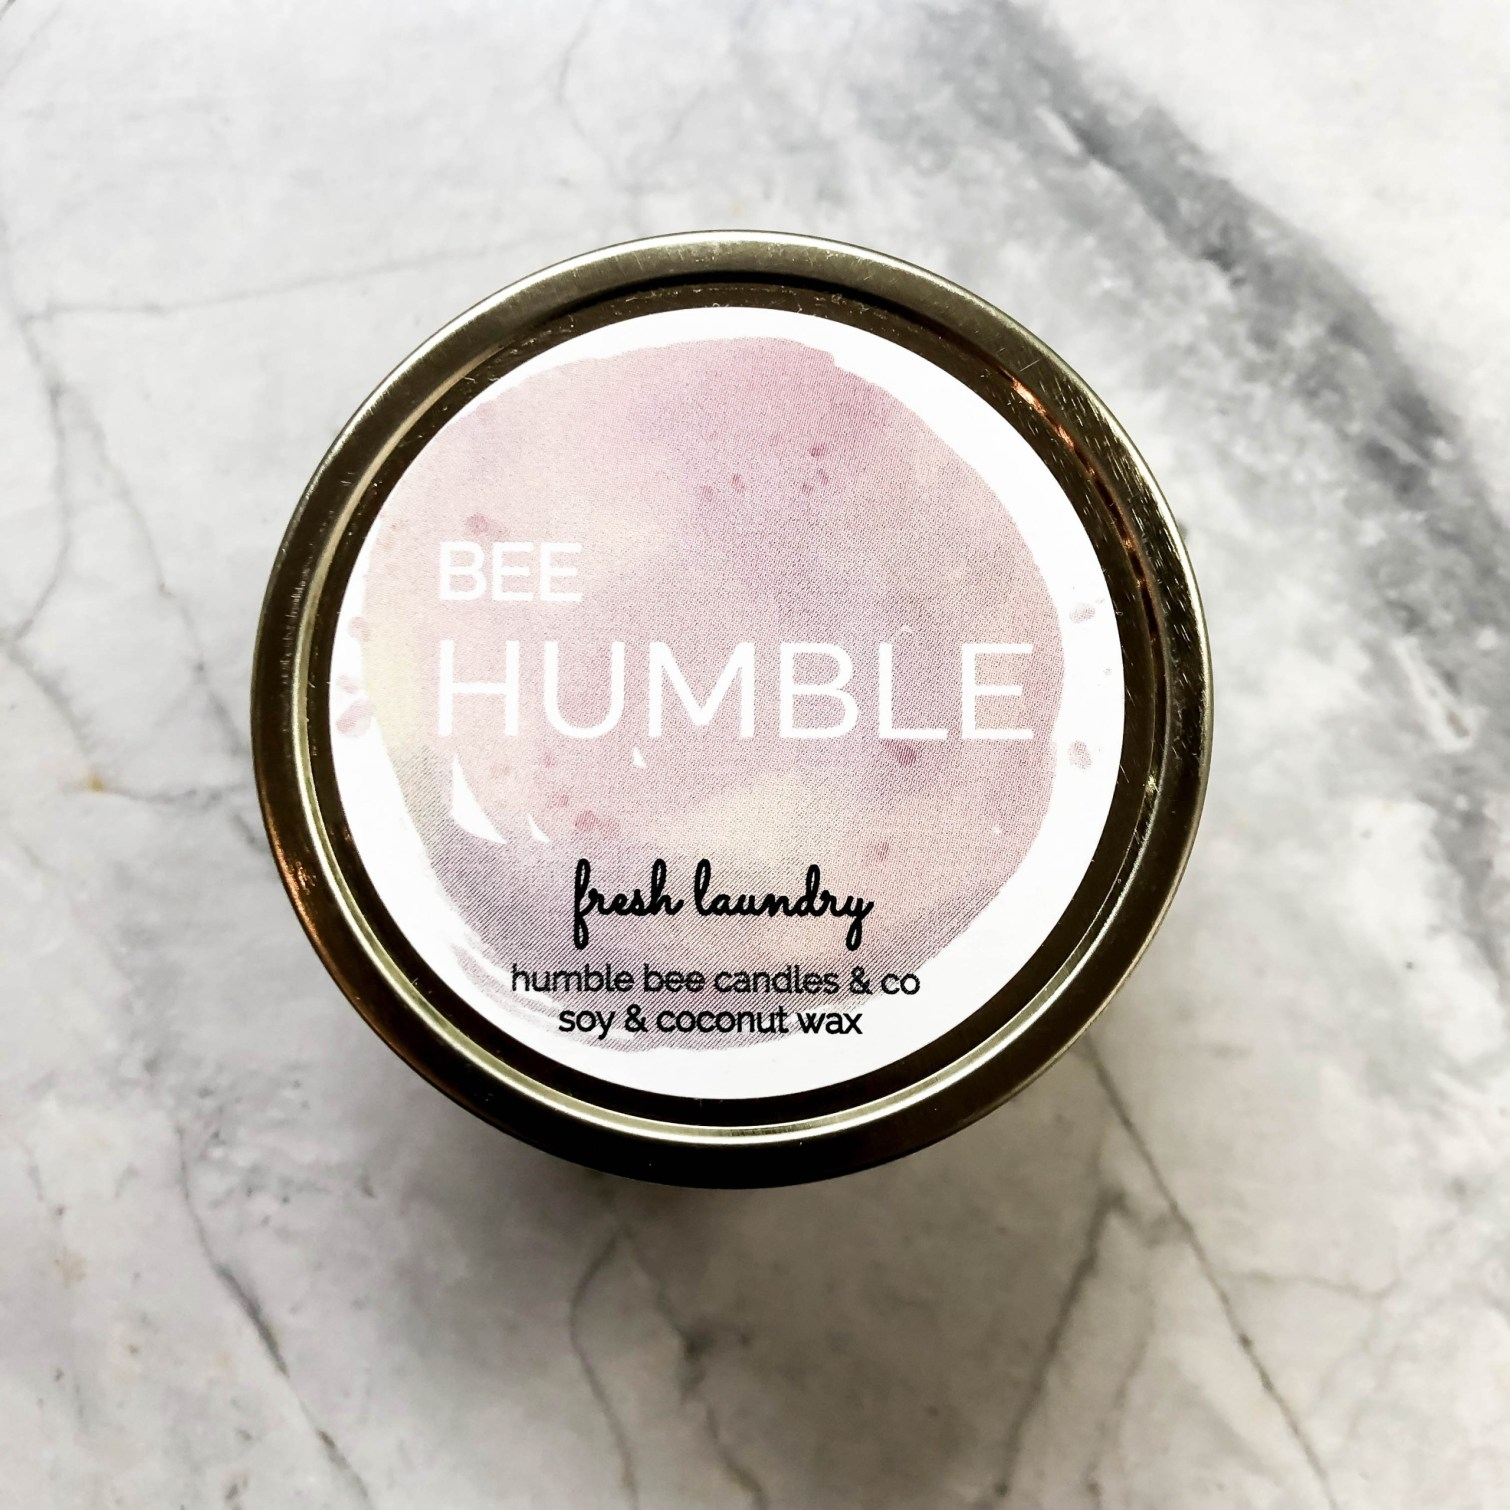 Humble bee fresh laundry candles